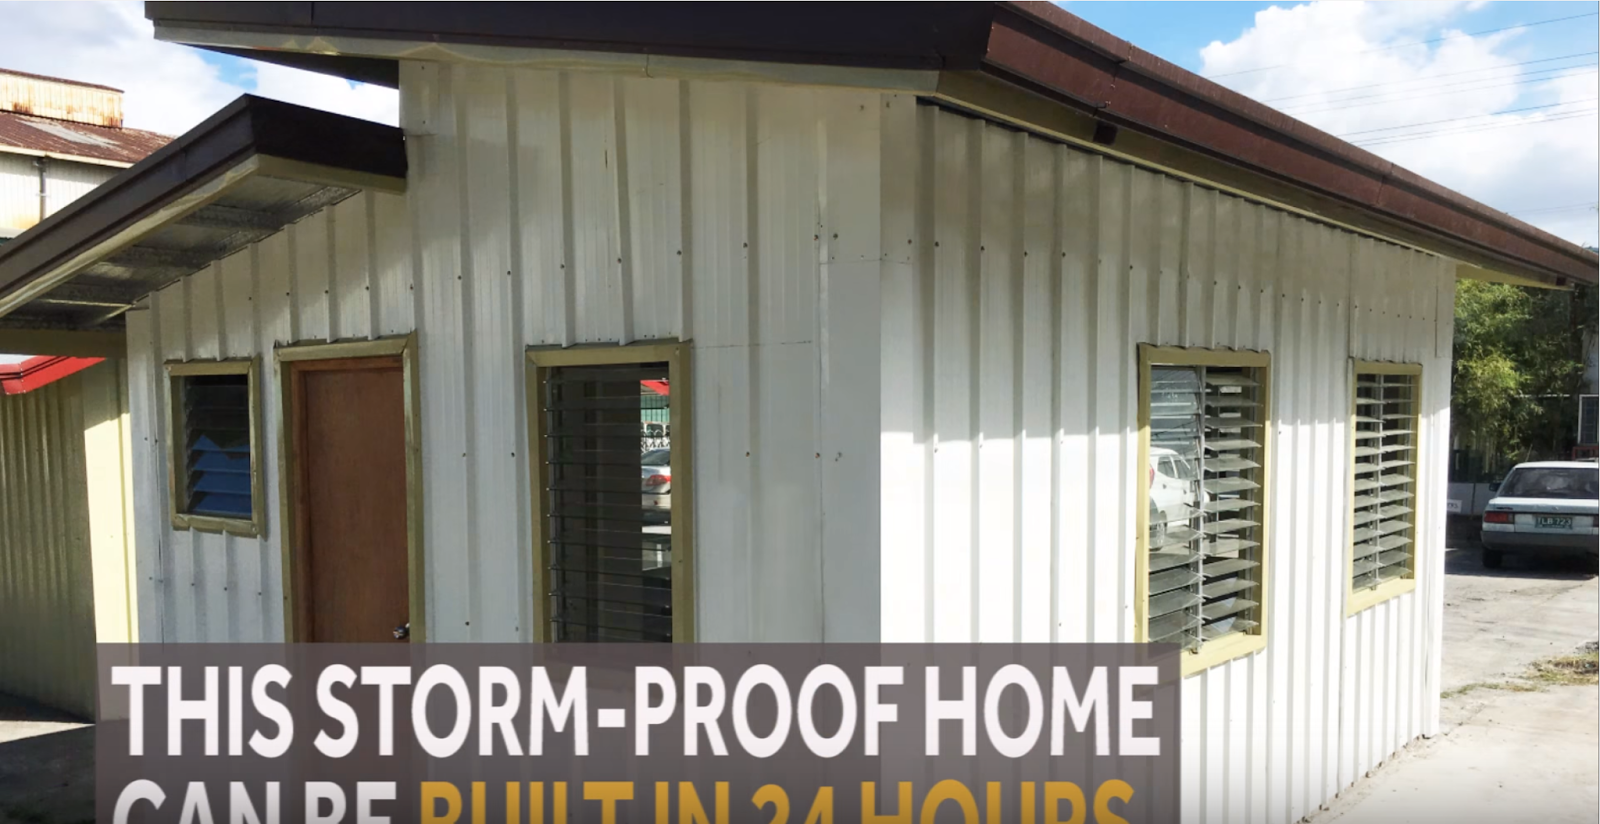 For sale bahay tibay php145 000 storm proof house in for Cyclone proof home designs